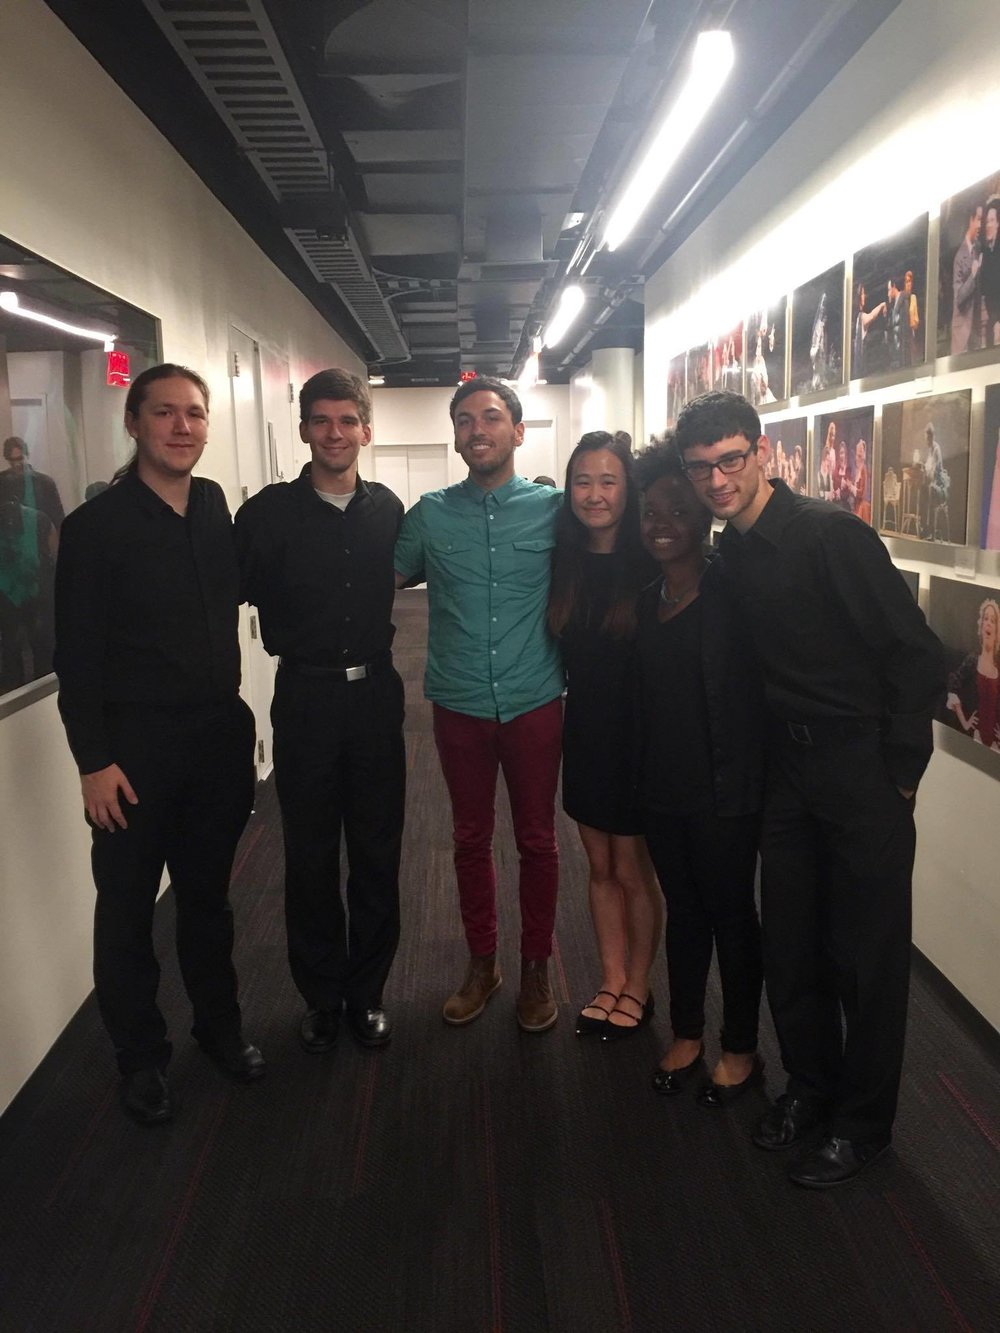 My quintet, with composer Erik Maloy!